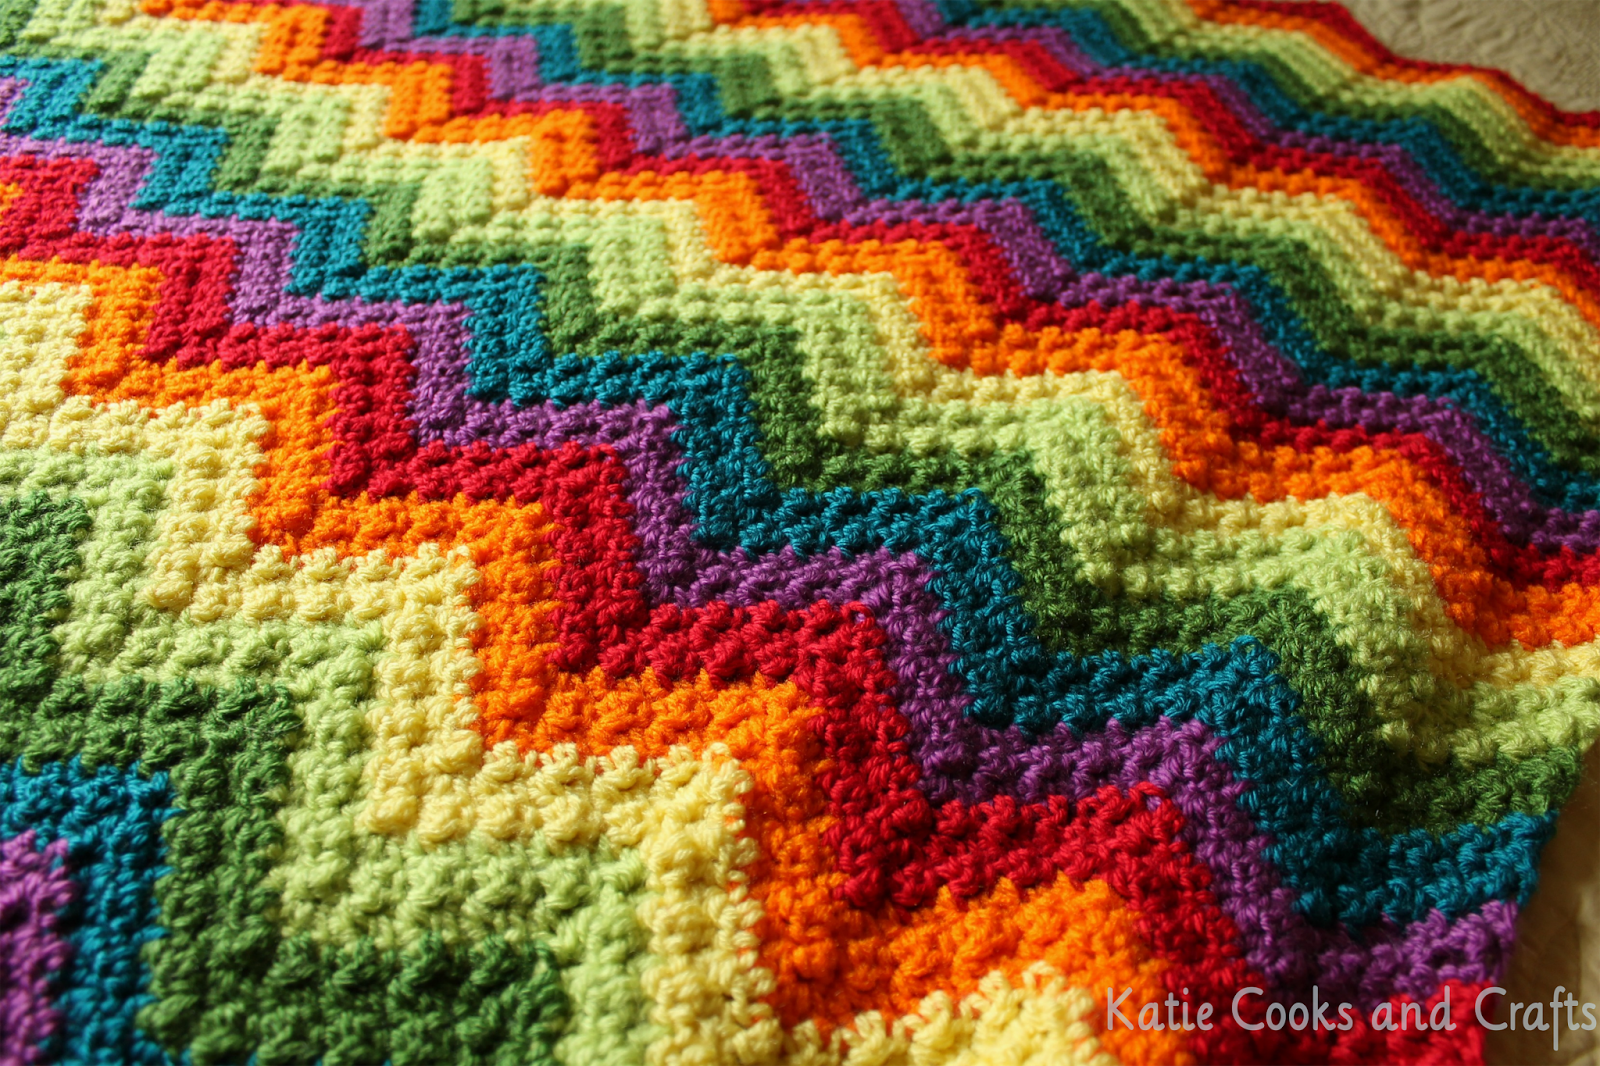 Free Crochet Baby Afghan Edging Patterns : Katie Cooks and Crafts: Rumpled Ripple Rainbow Crochet ...